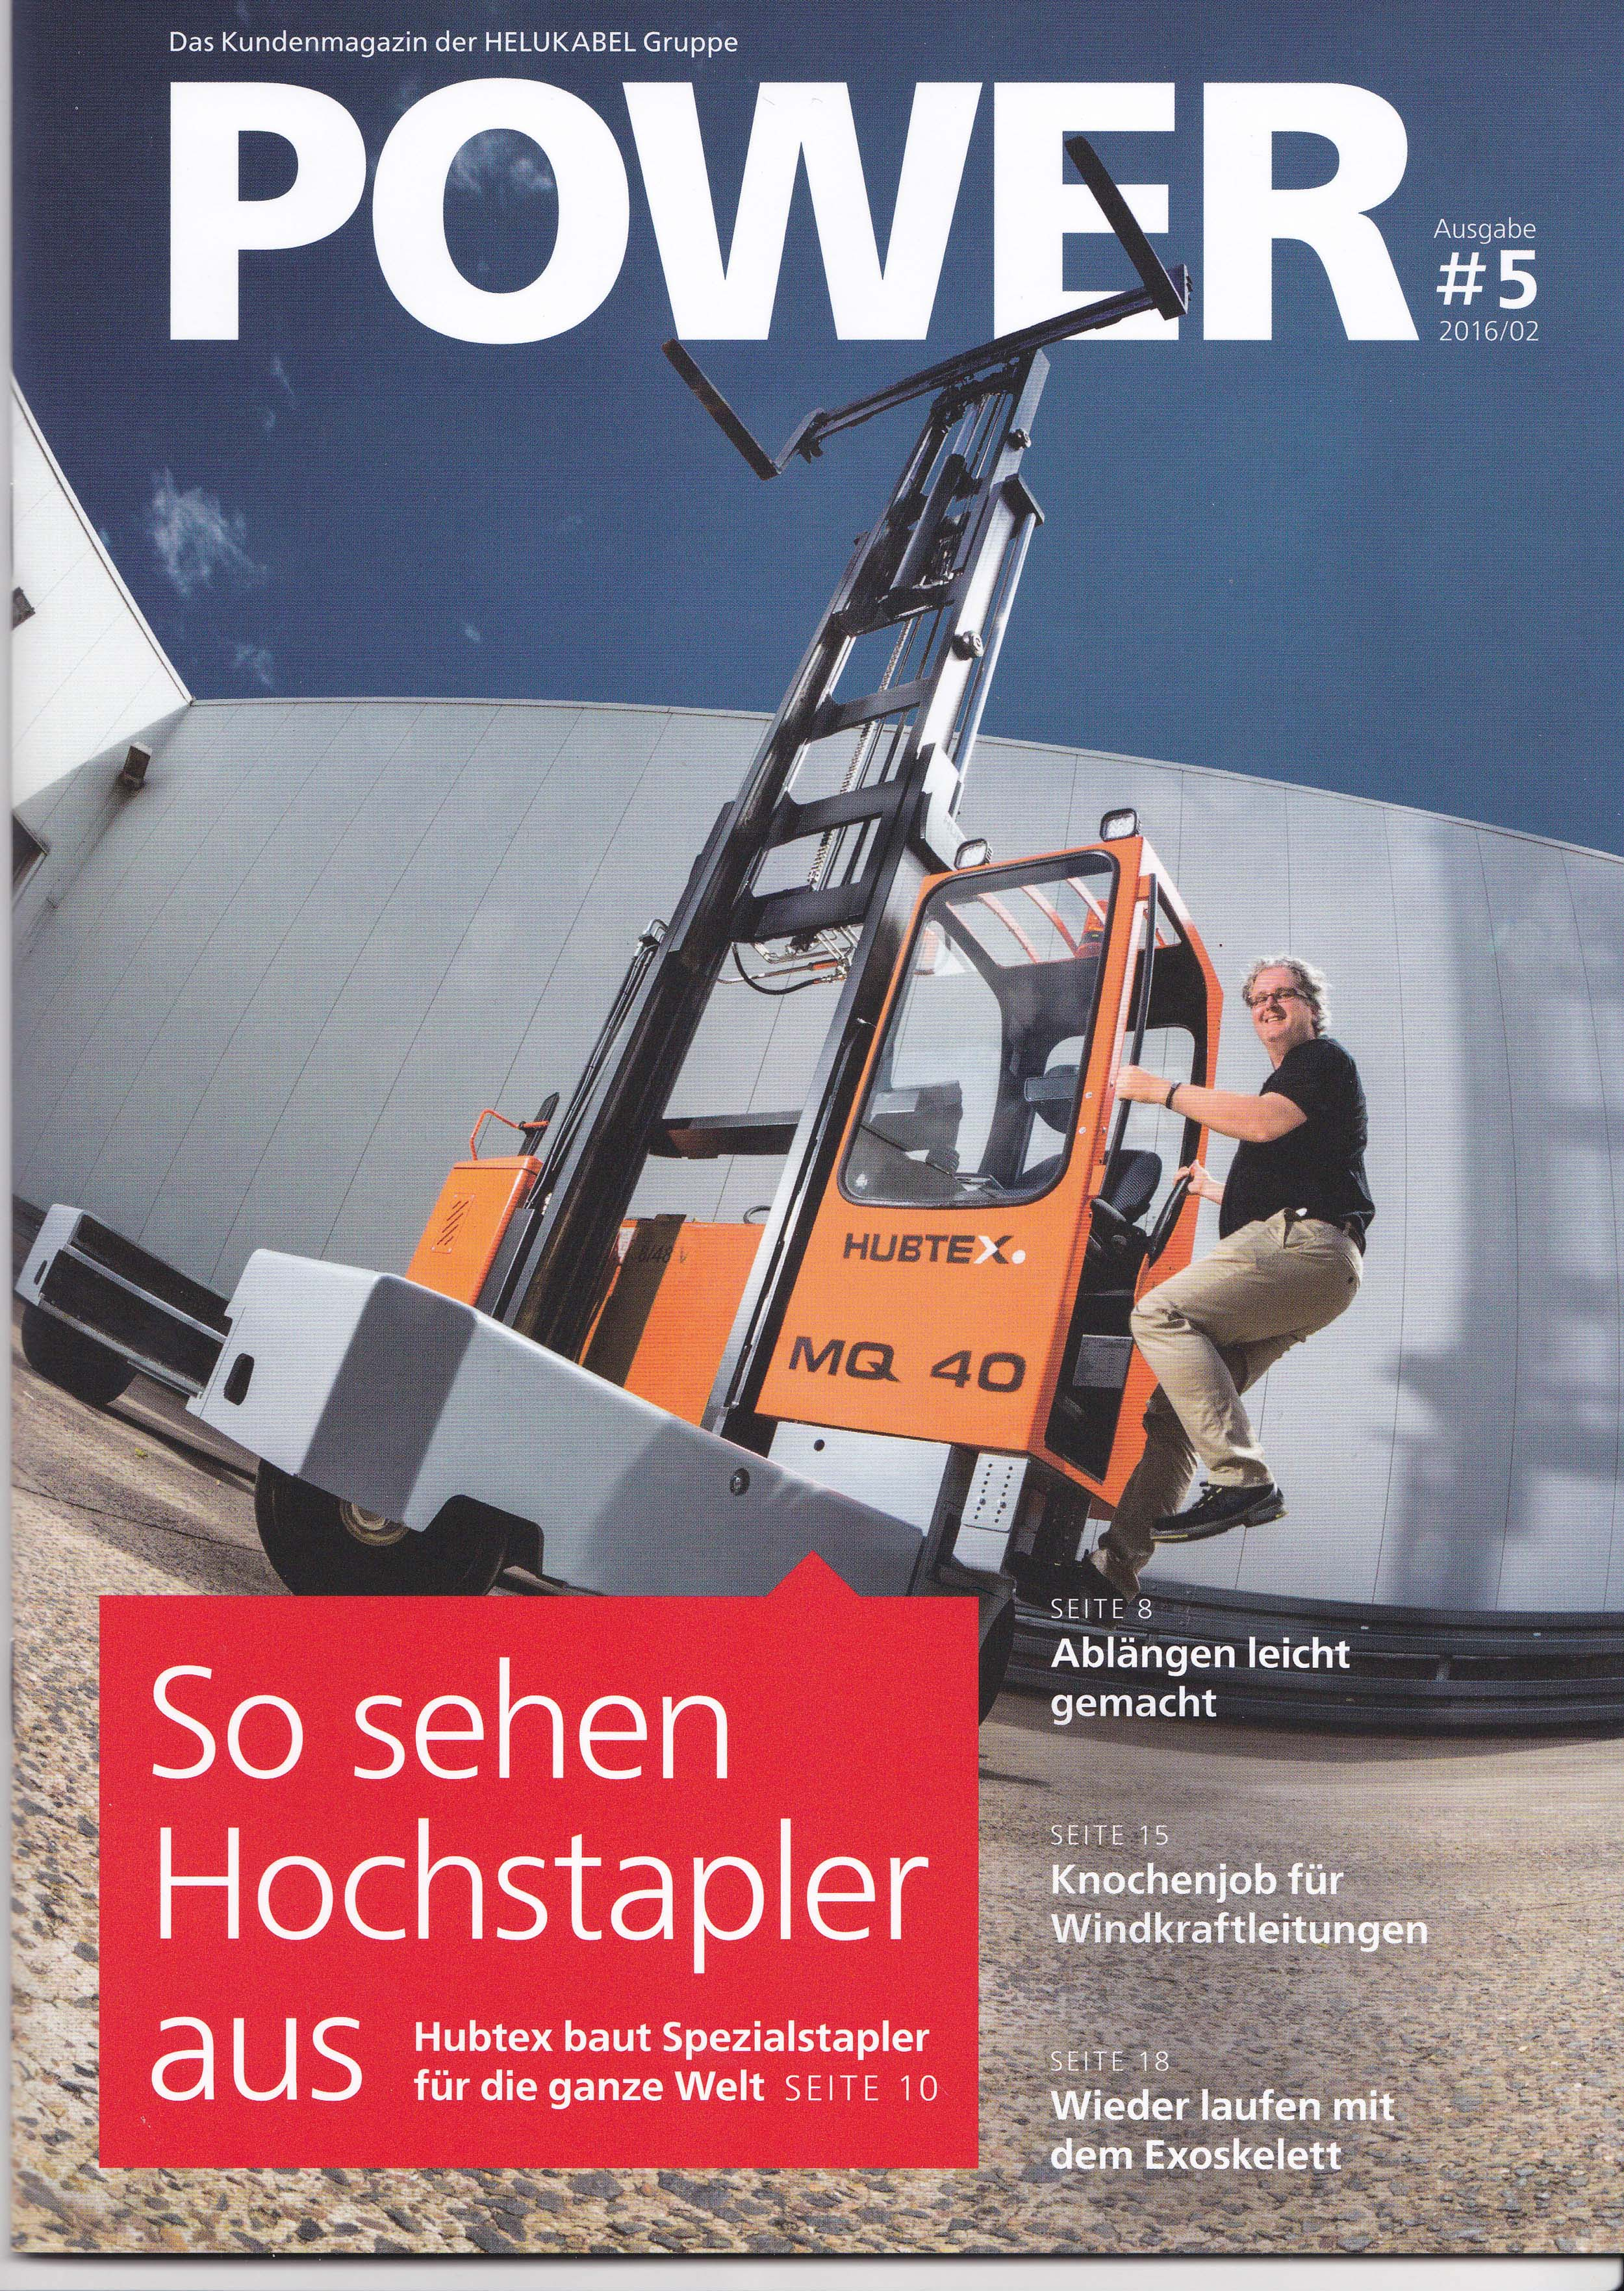 Helukabel Power Magazin CoverShooting Industrie Werbeshooting